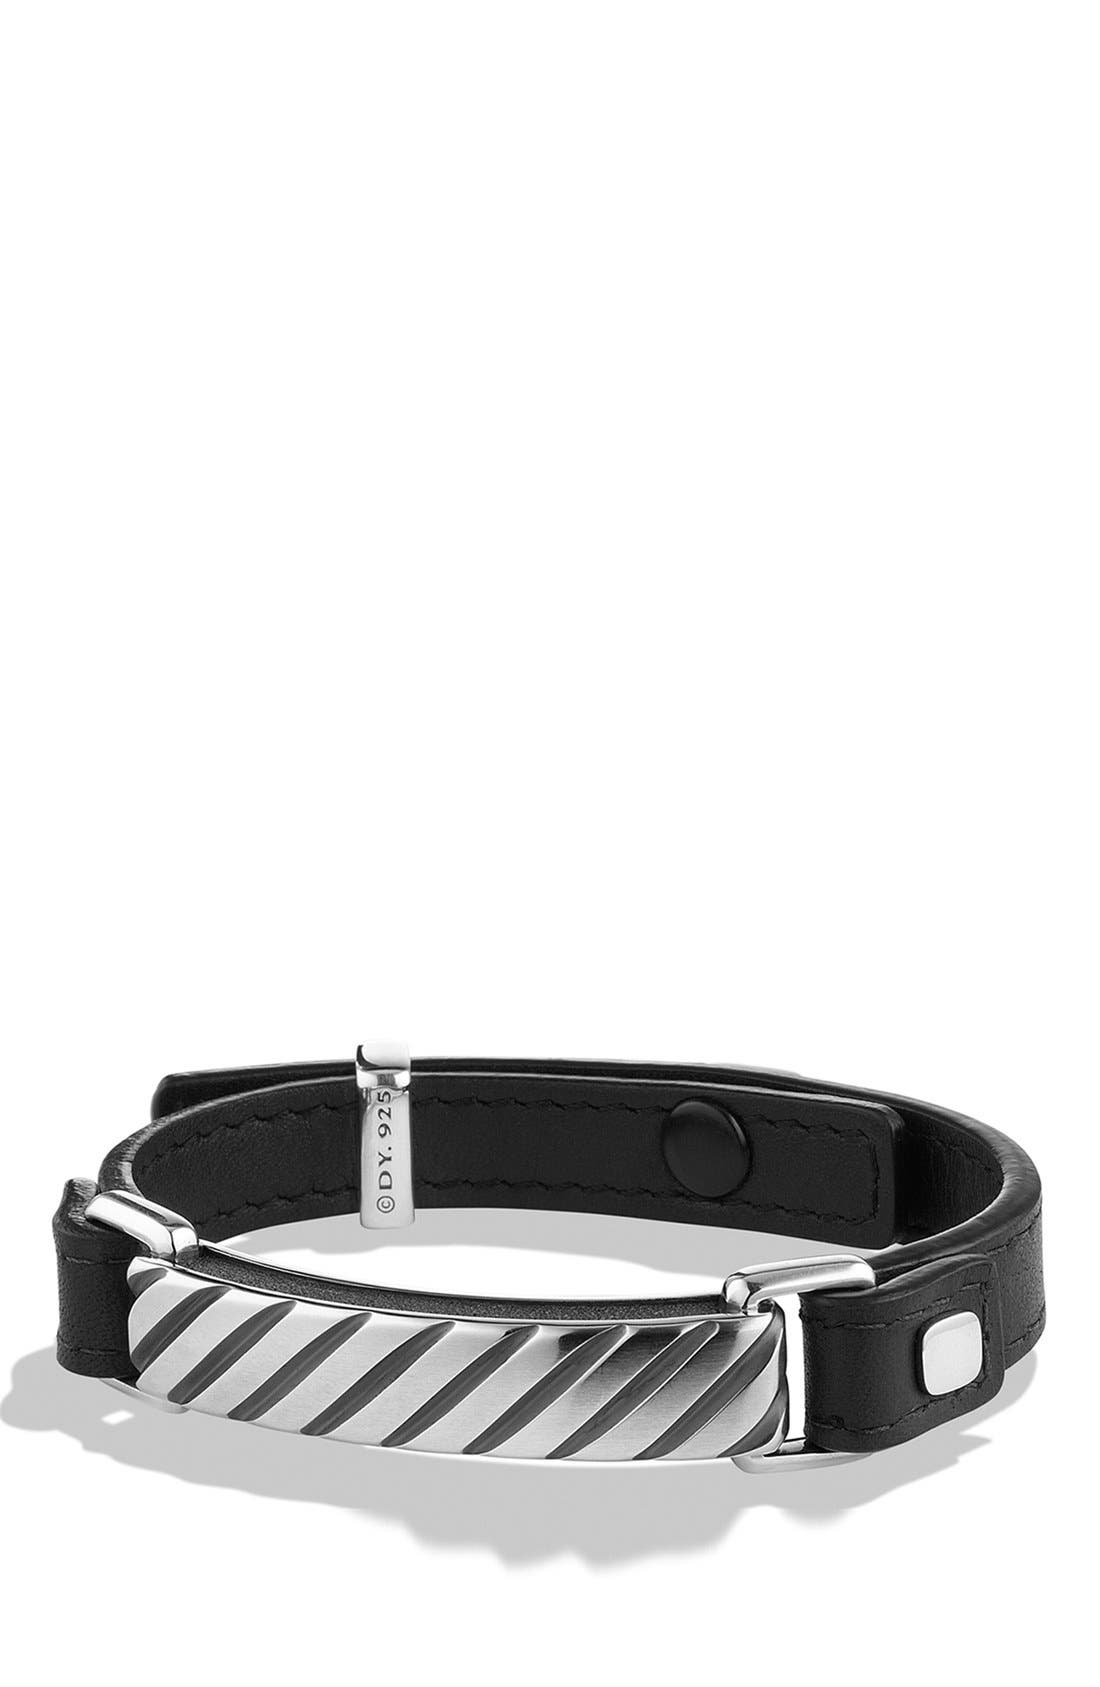 DAVID YURMAN, Modern Cable ID Bracelet, Main thumbnail 1, color, BLACK